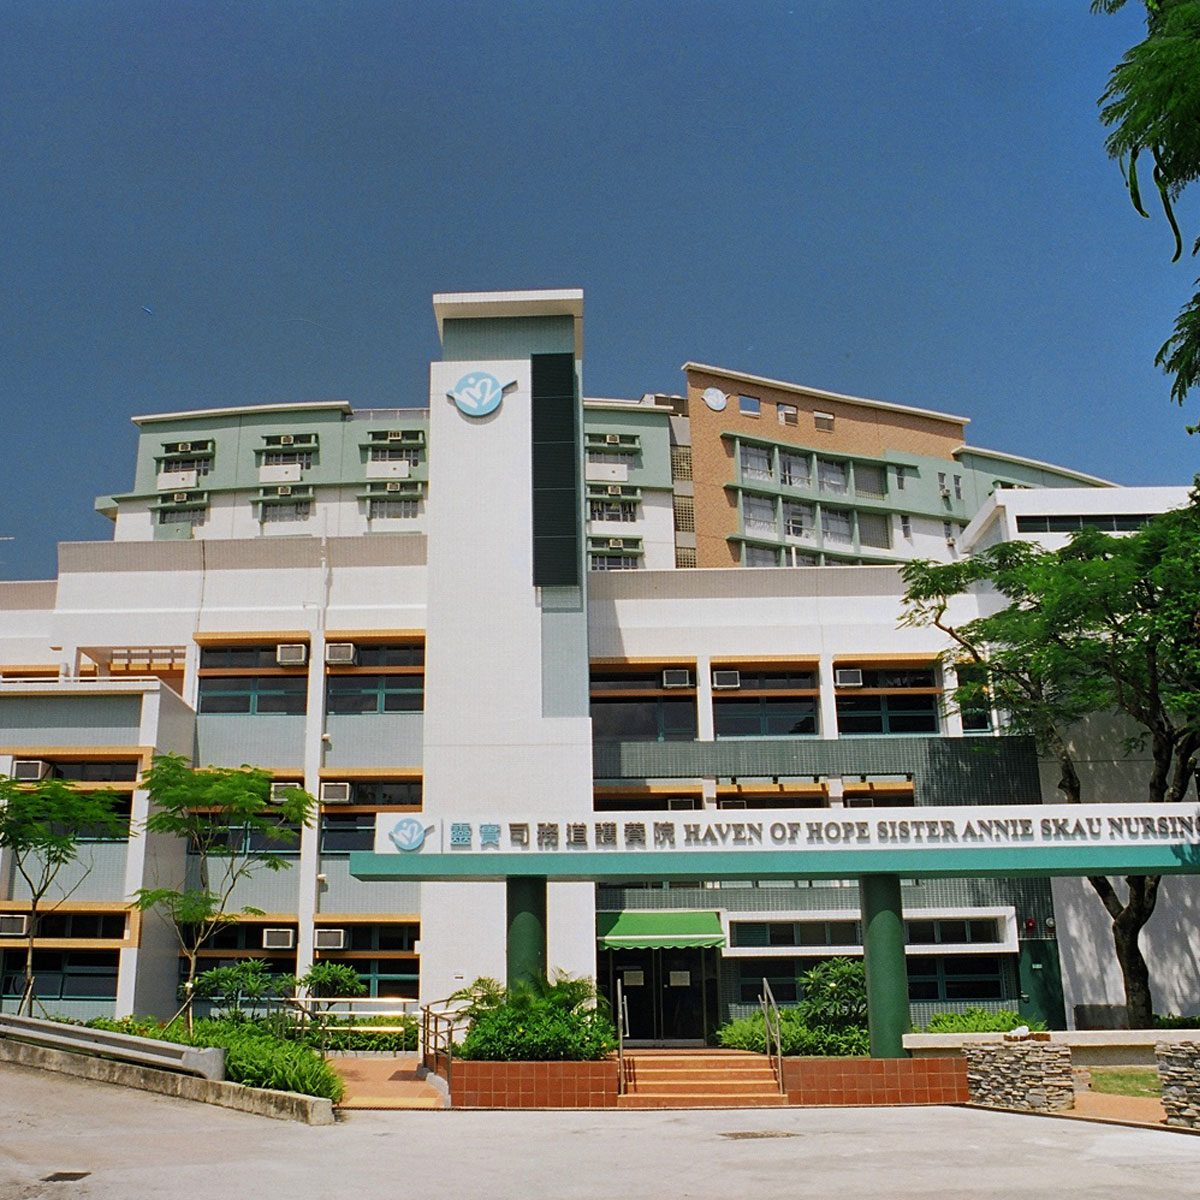 Sister Annie Skau Nursing Home, Alteration and Addition Works at 23 Haven of Hope Road, Tseung Kwan O, New Territories